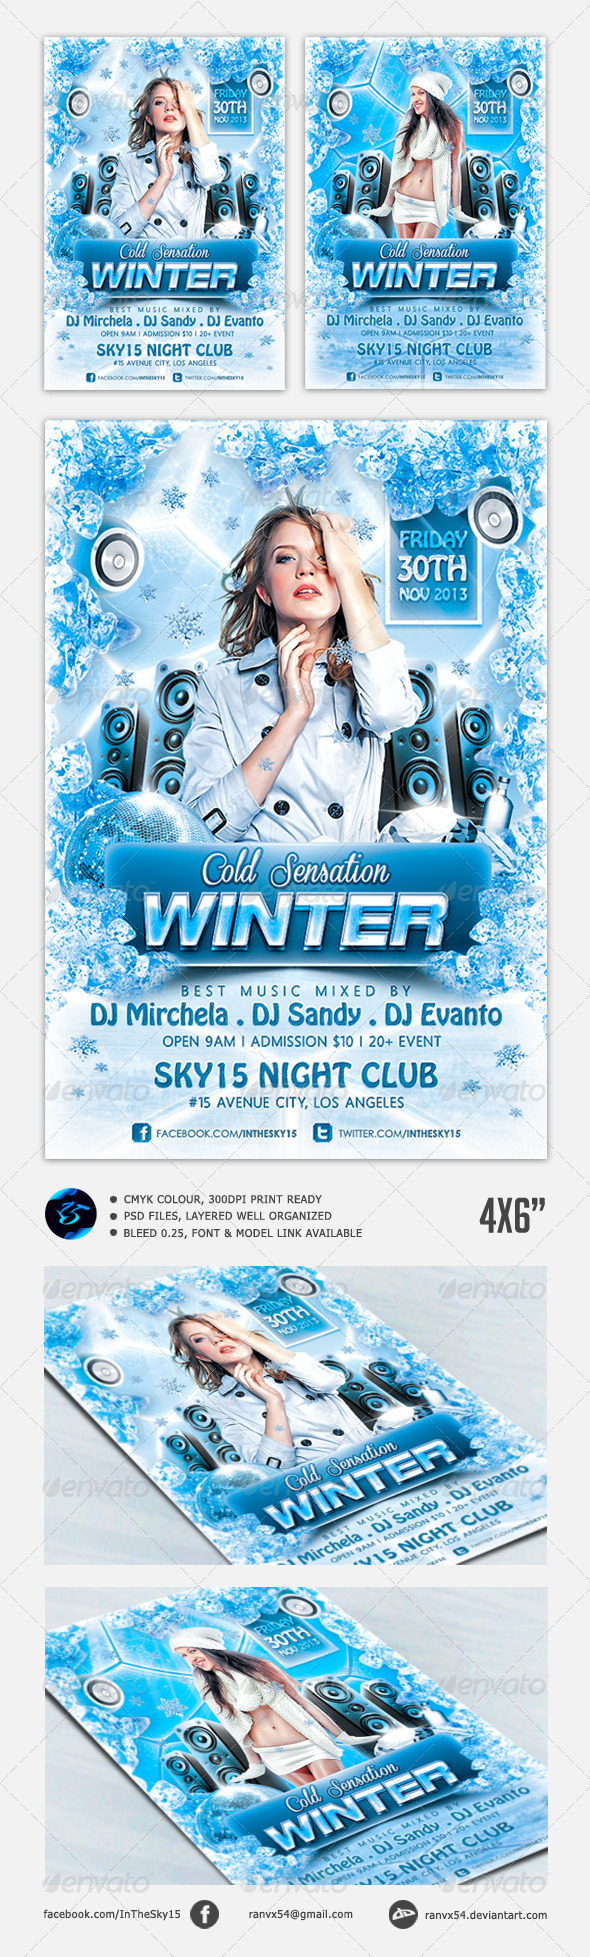 Winter Cold Sensation Flyer Template - Holidays Events